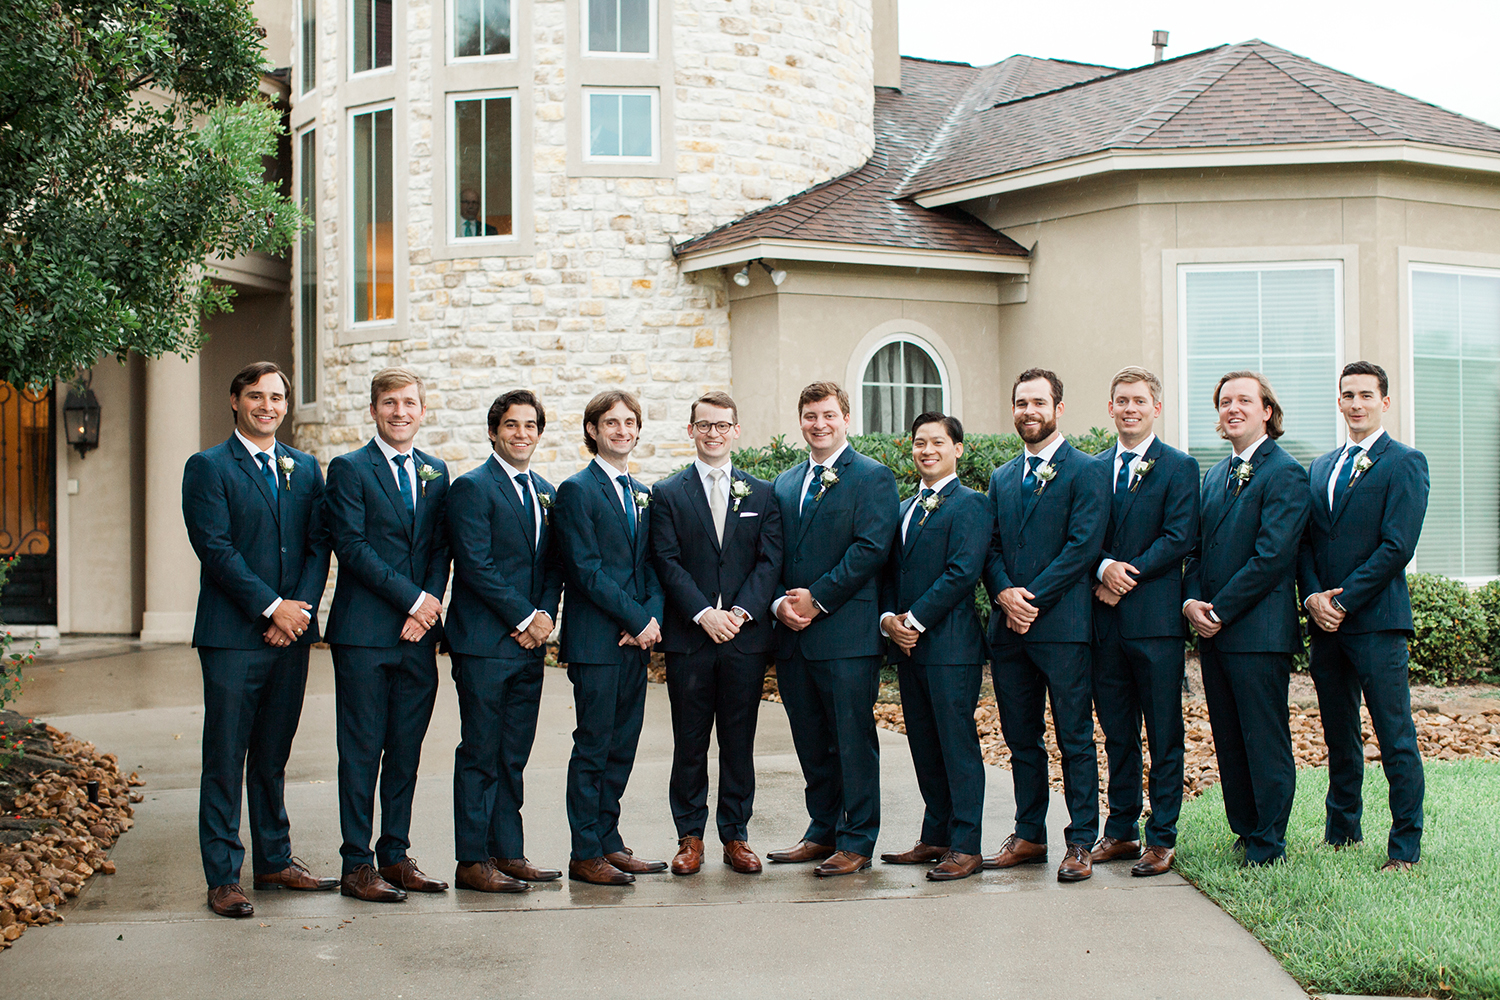 wedding party - blue suits - groomsmen